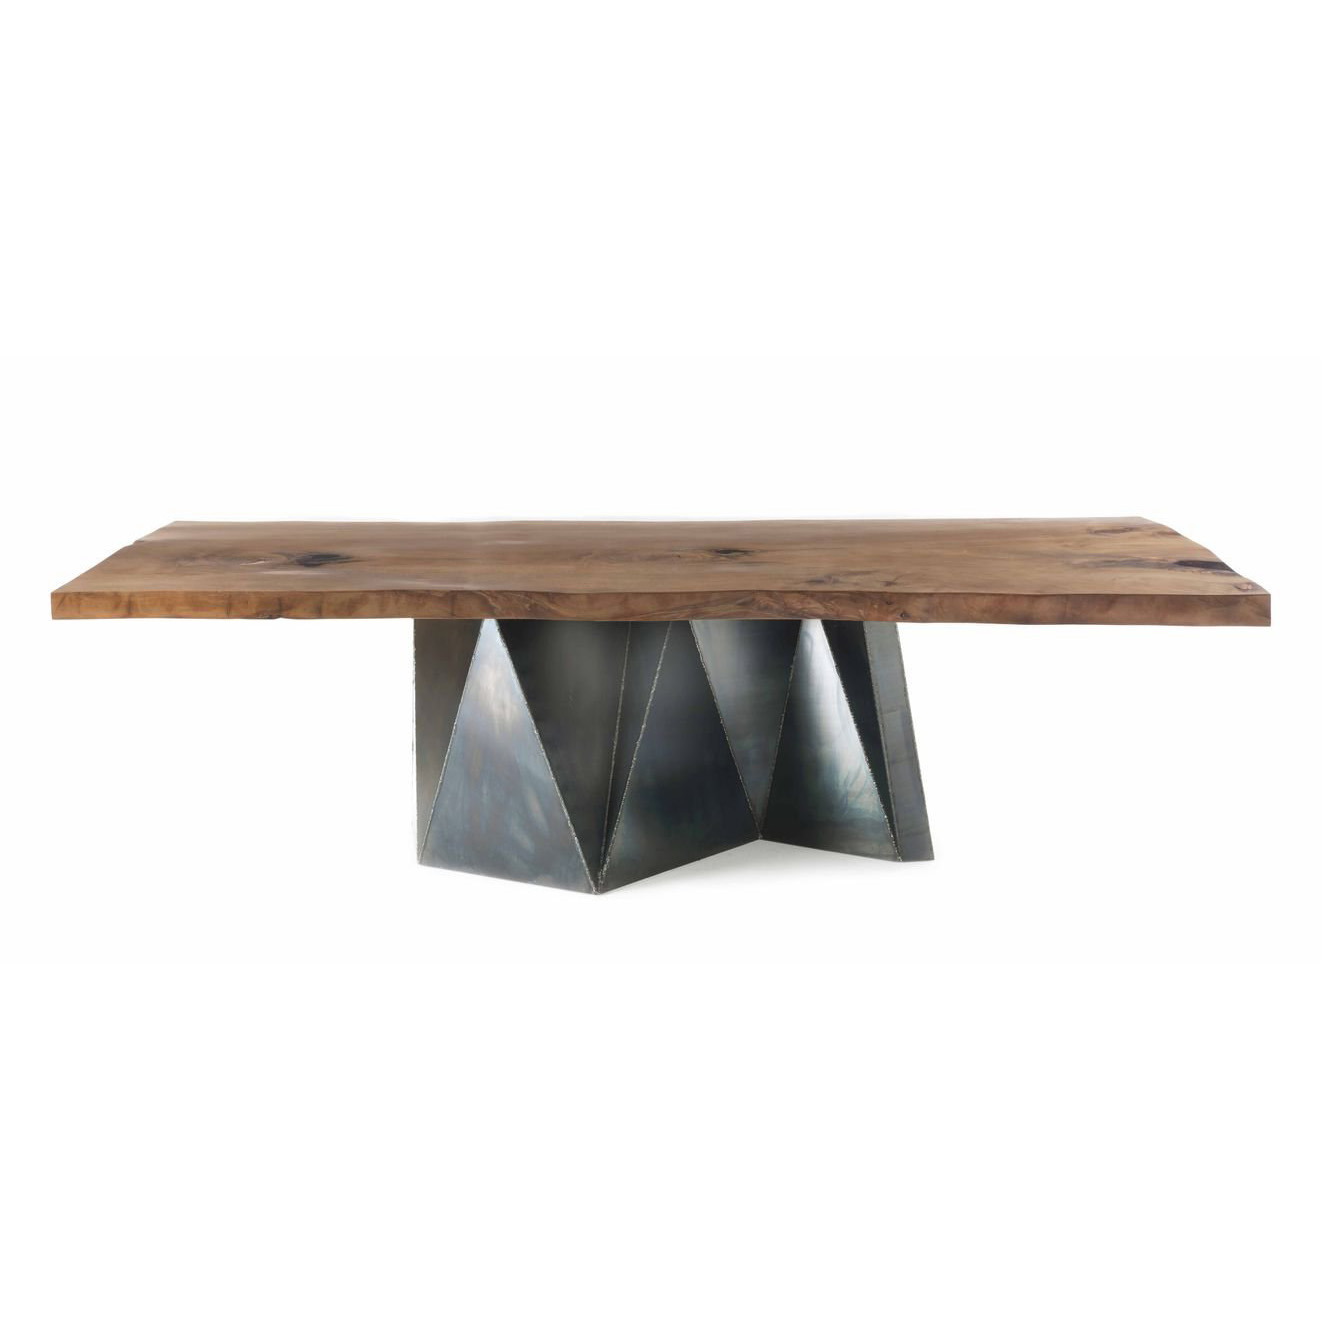 Kauri Ooki dining table from Riva 1920